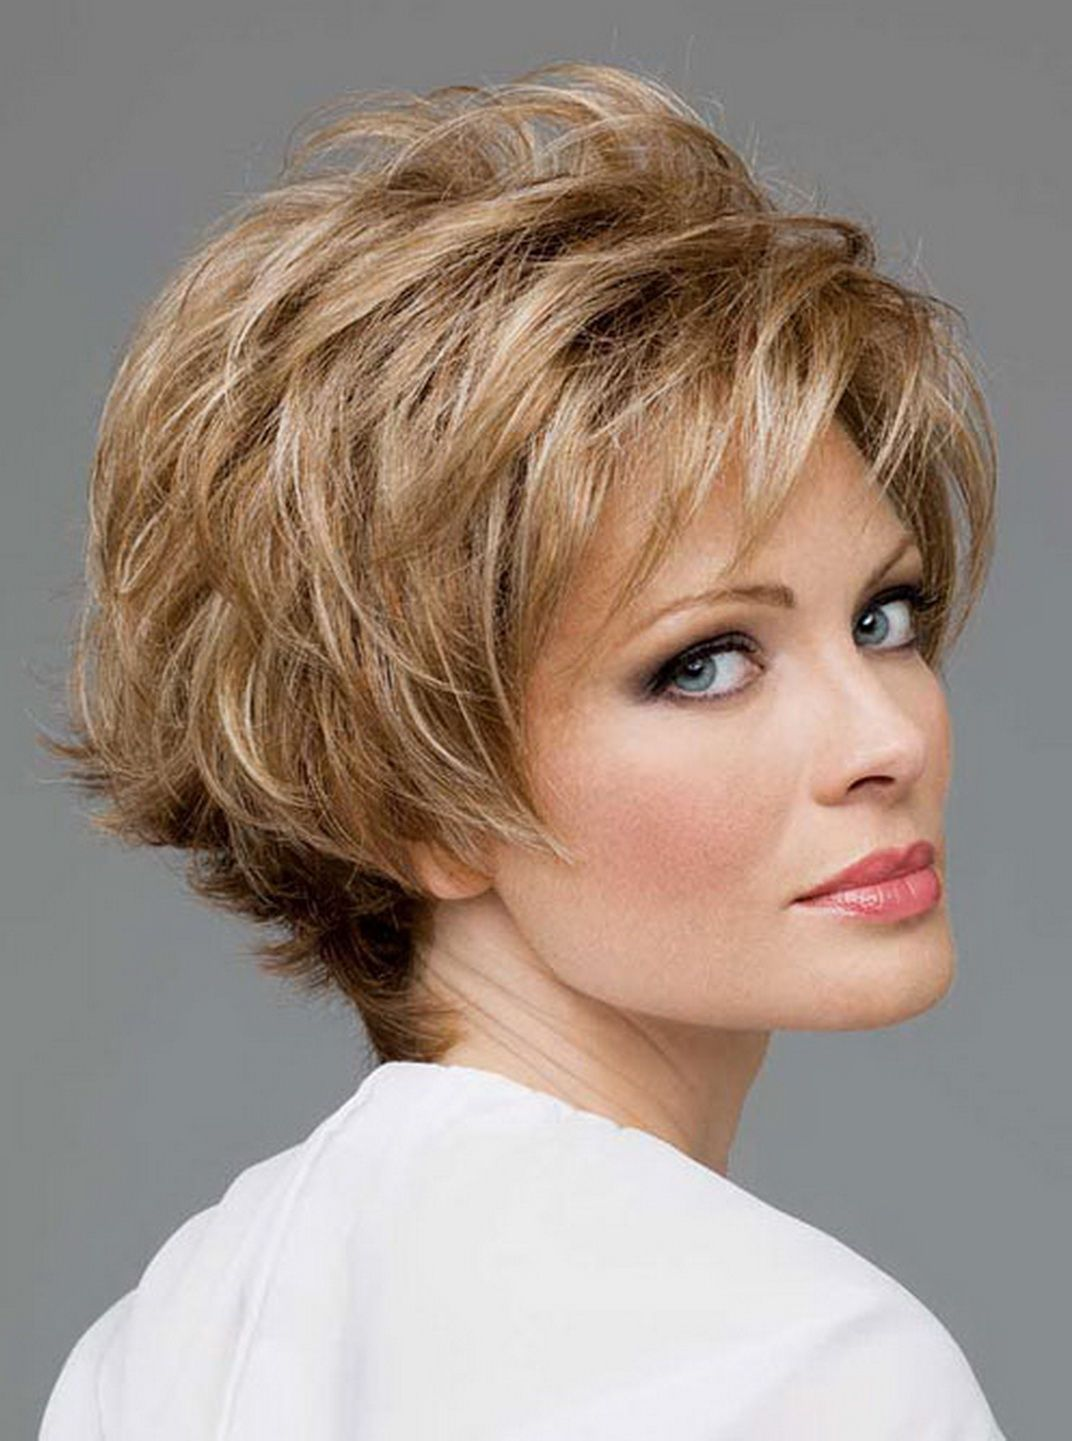 Short wedge haircuts for women bing images hairstyles